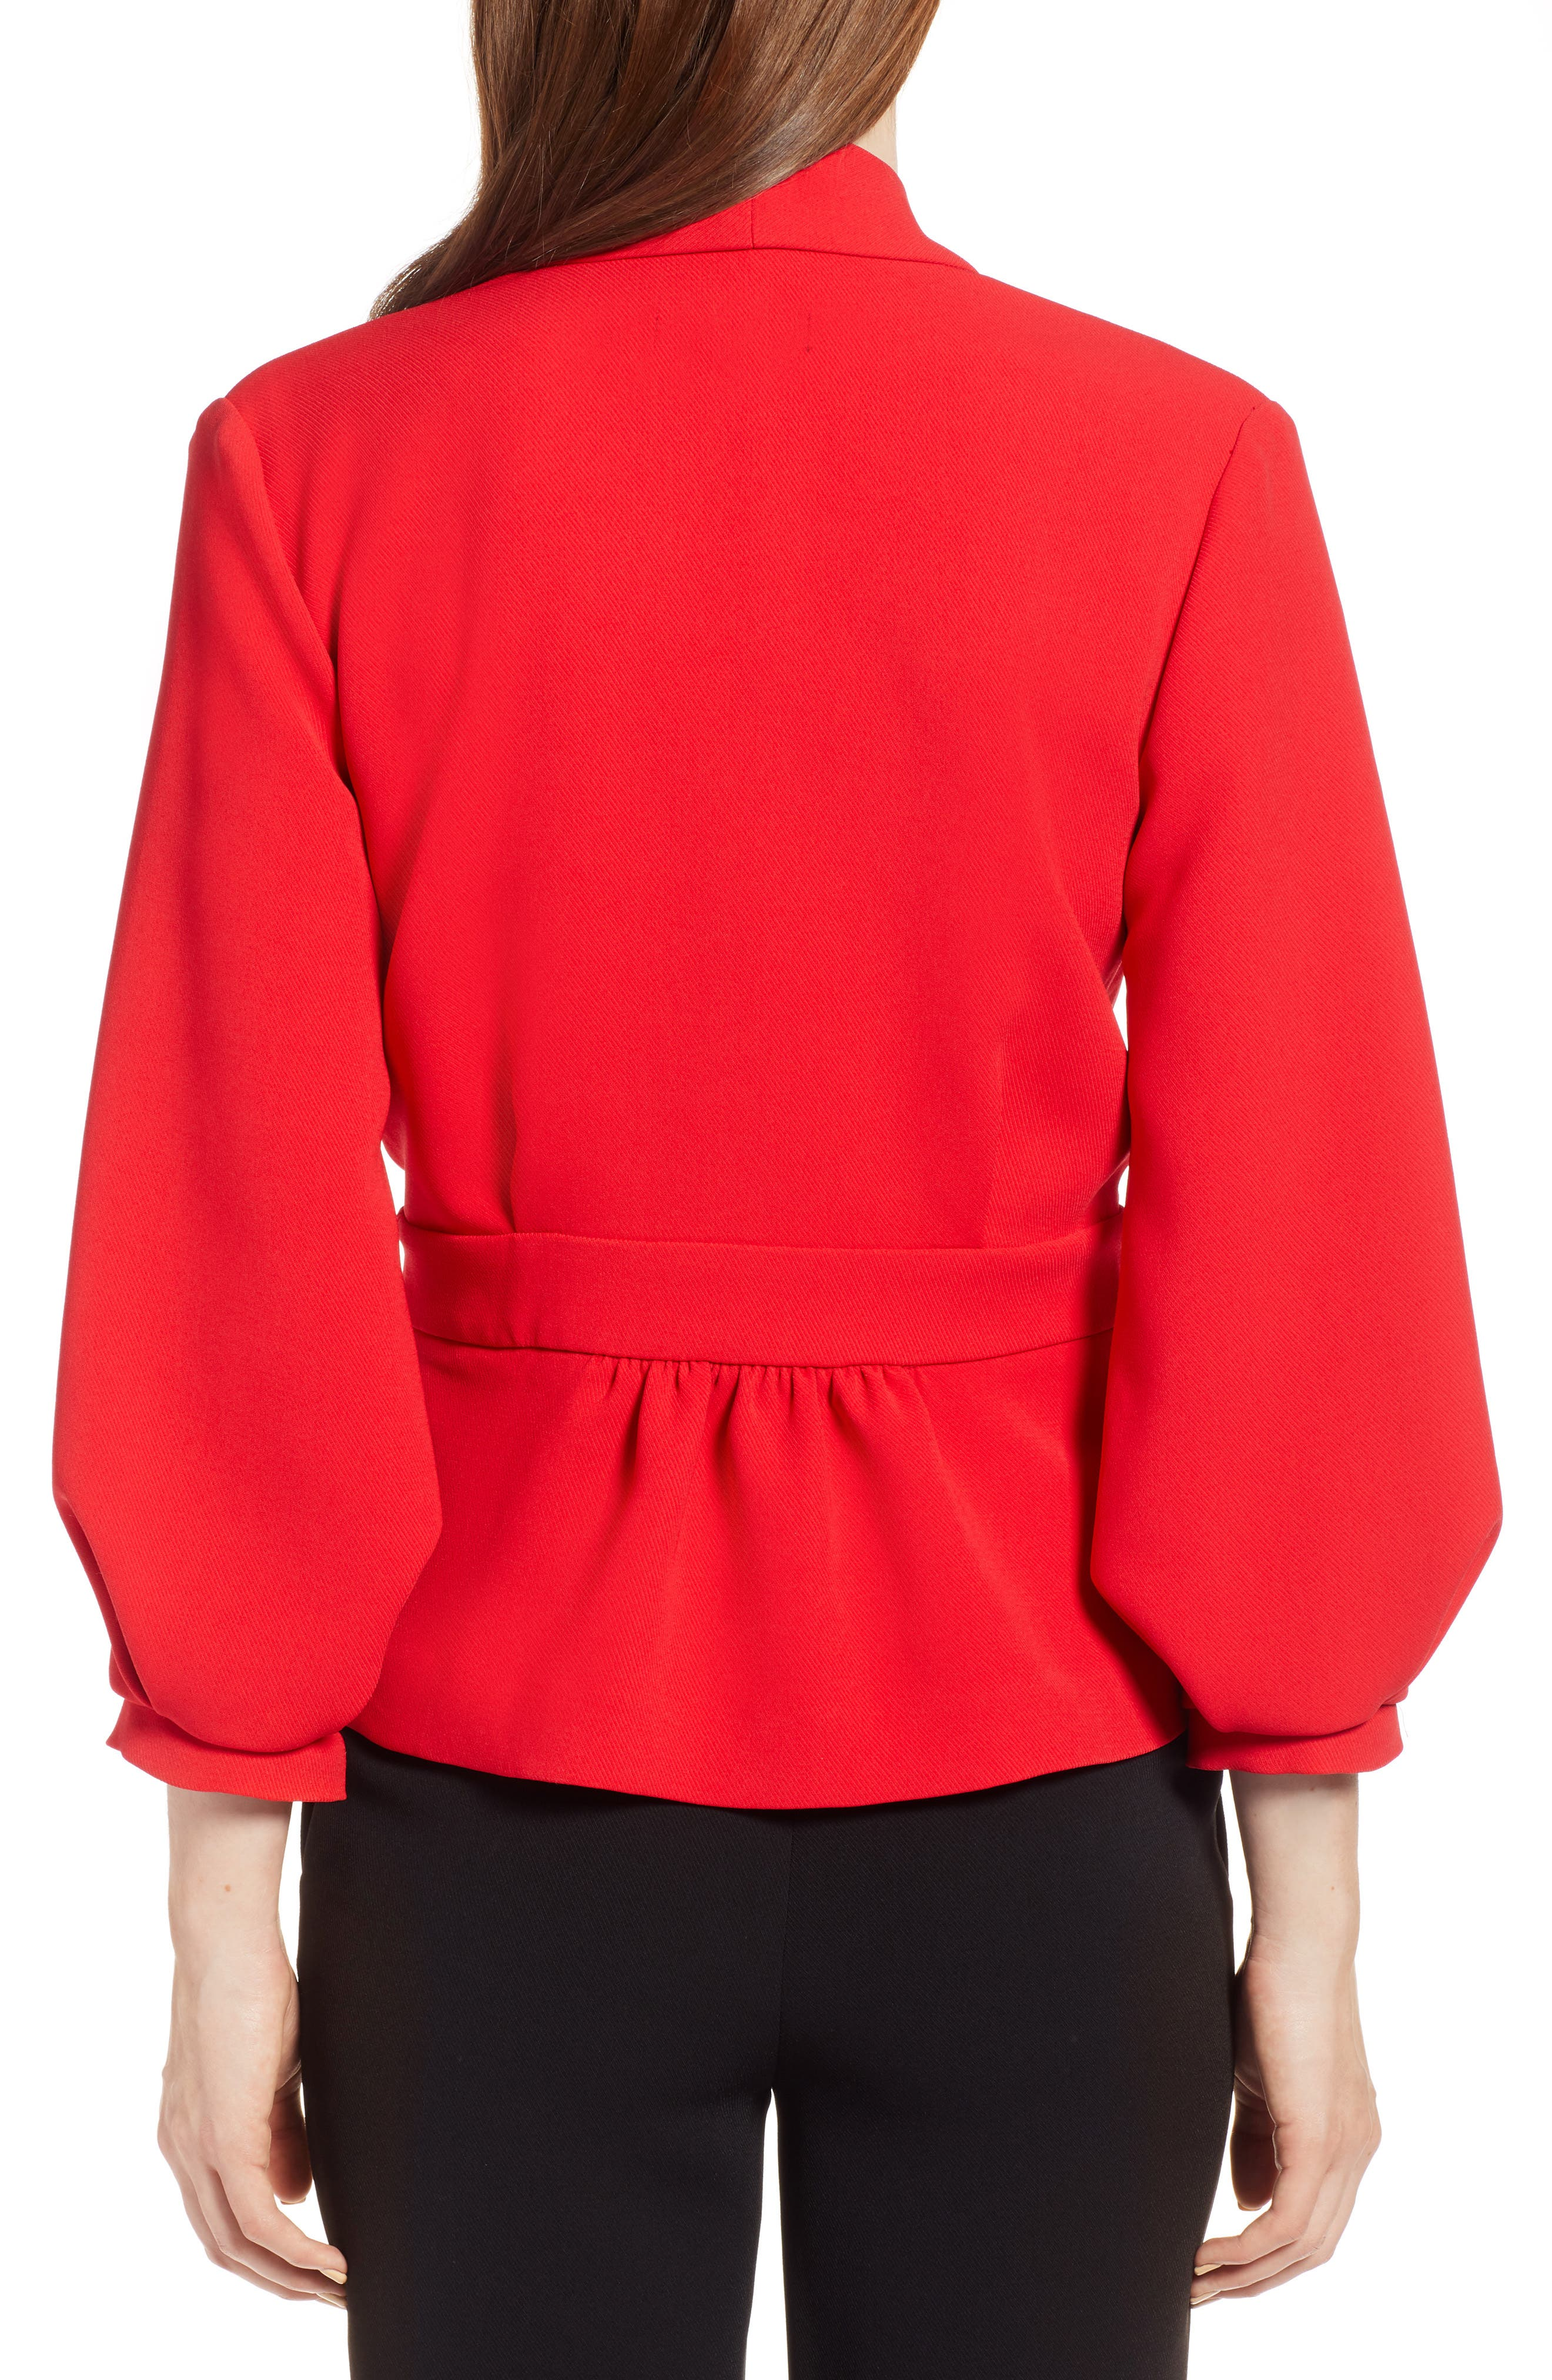 Blouson Sleeve Jacket,                             Alternate thumbnail 2, color,                             Red Chinoise